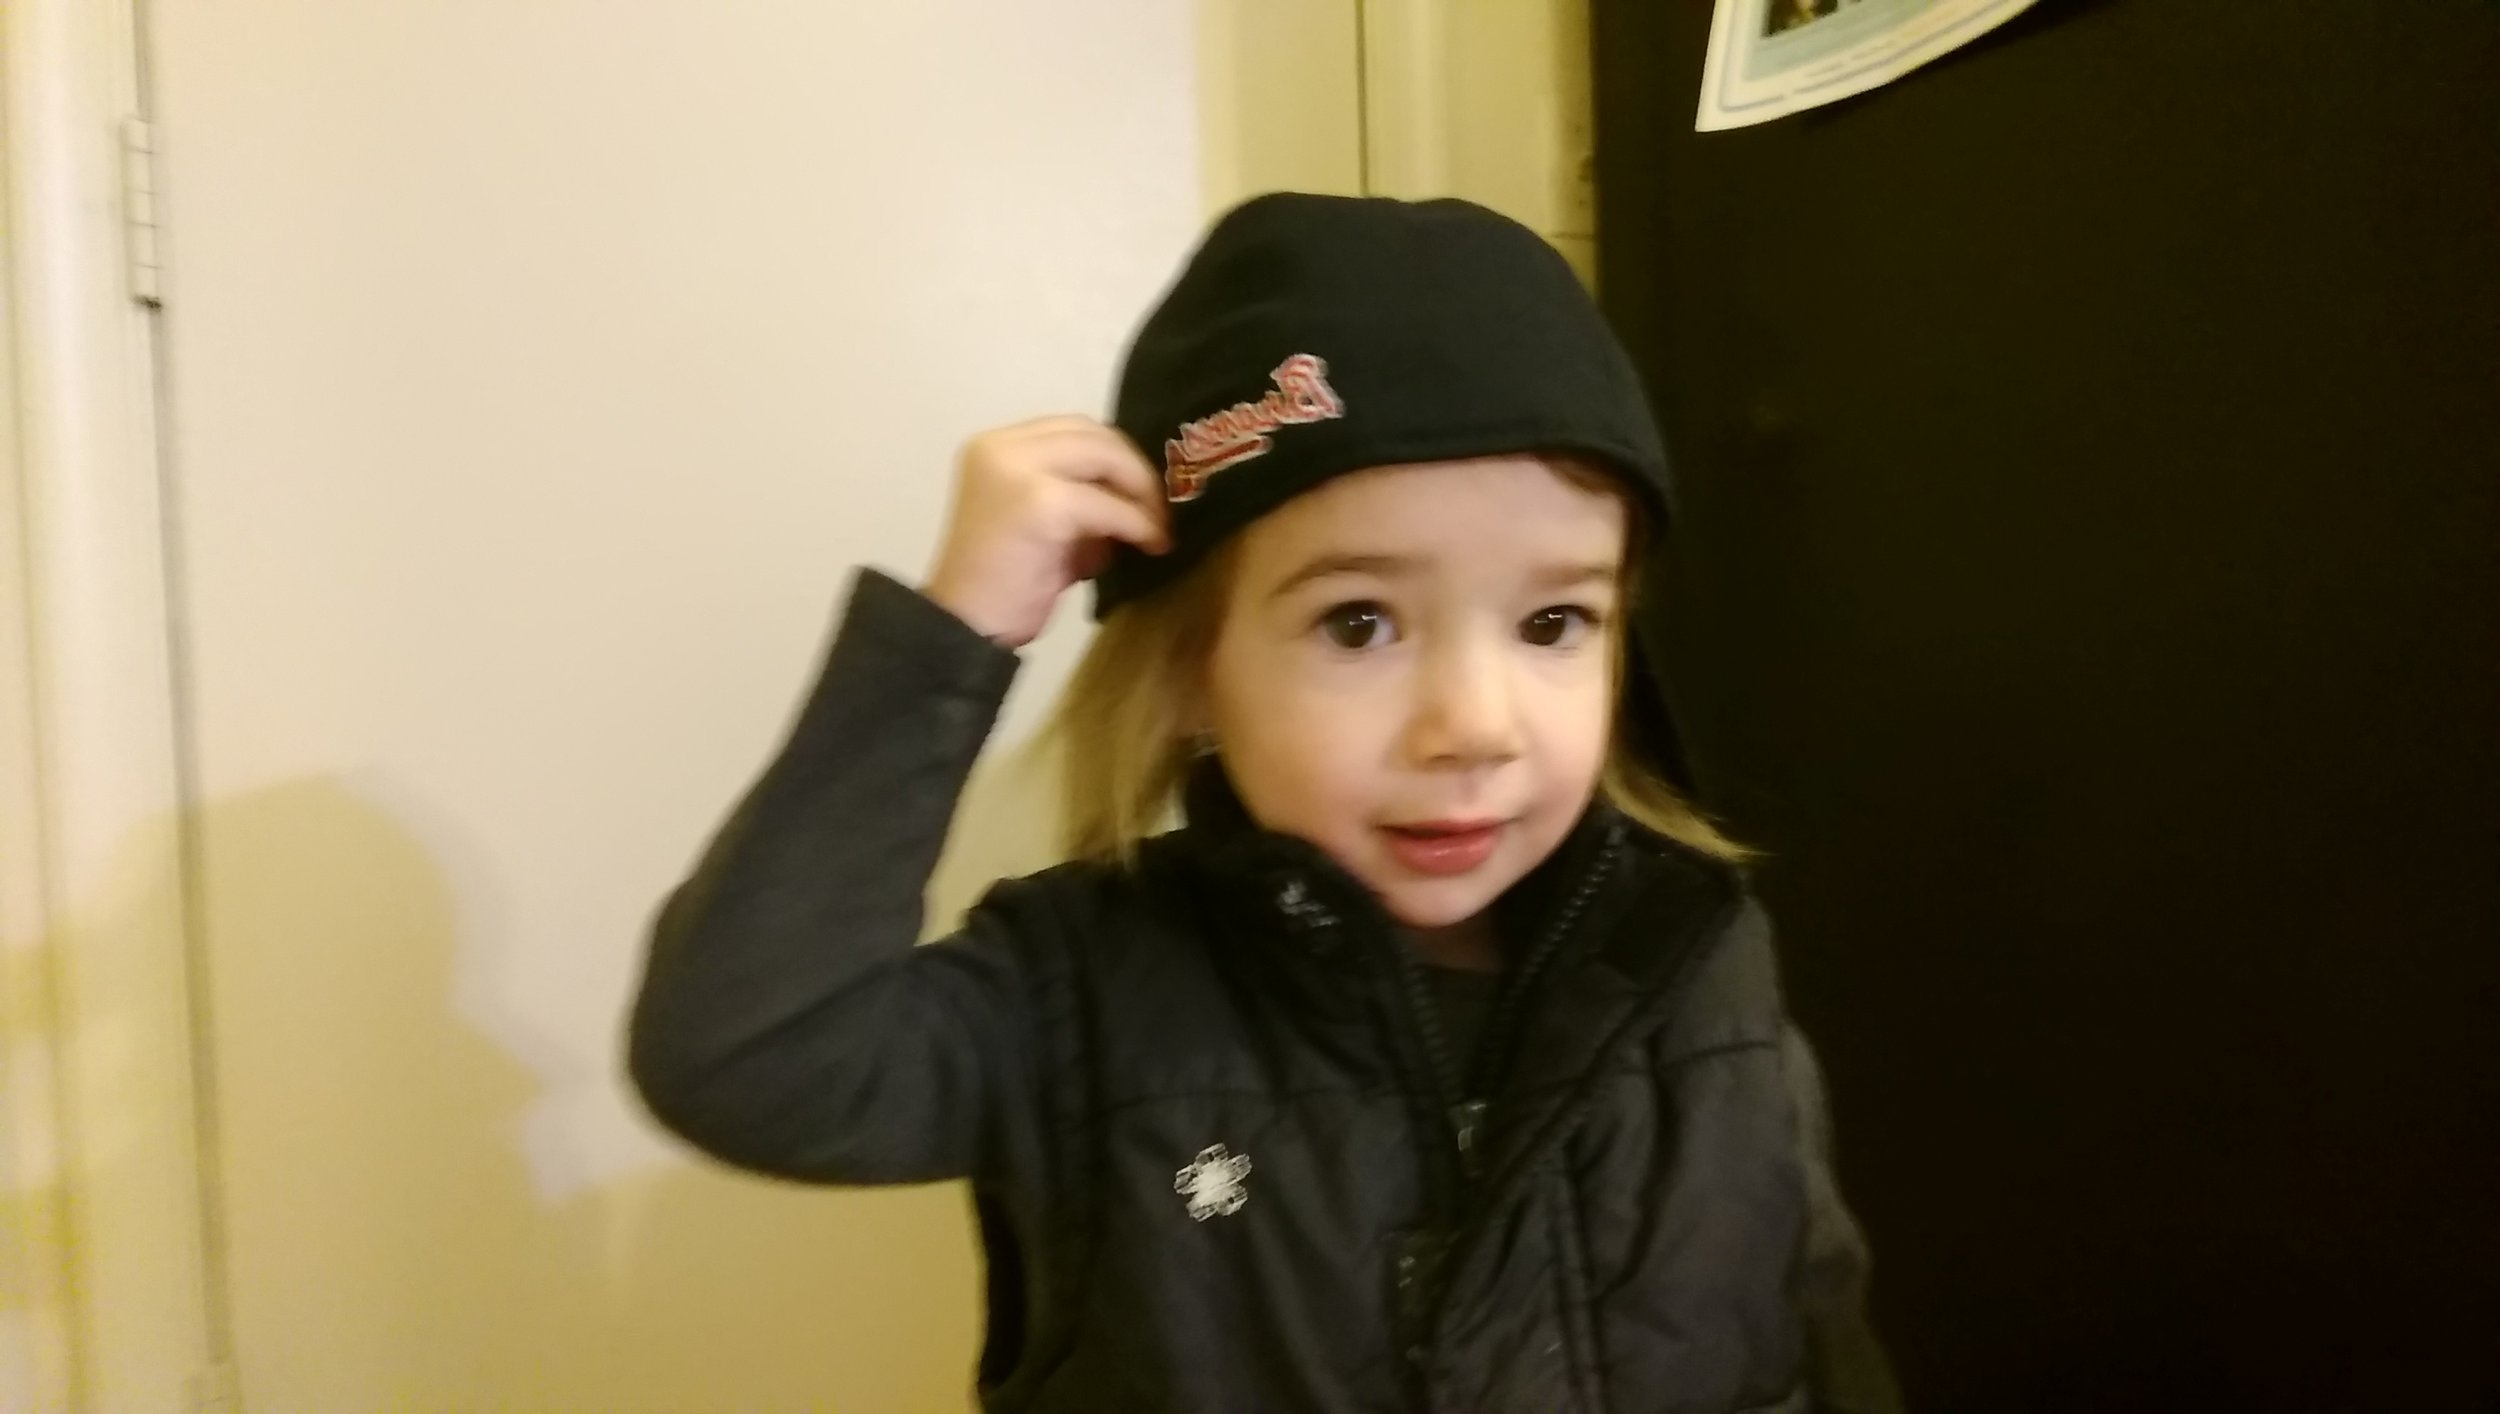 Cool kid in a baseball hat